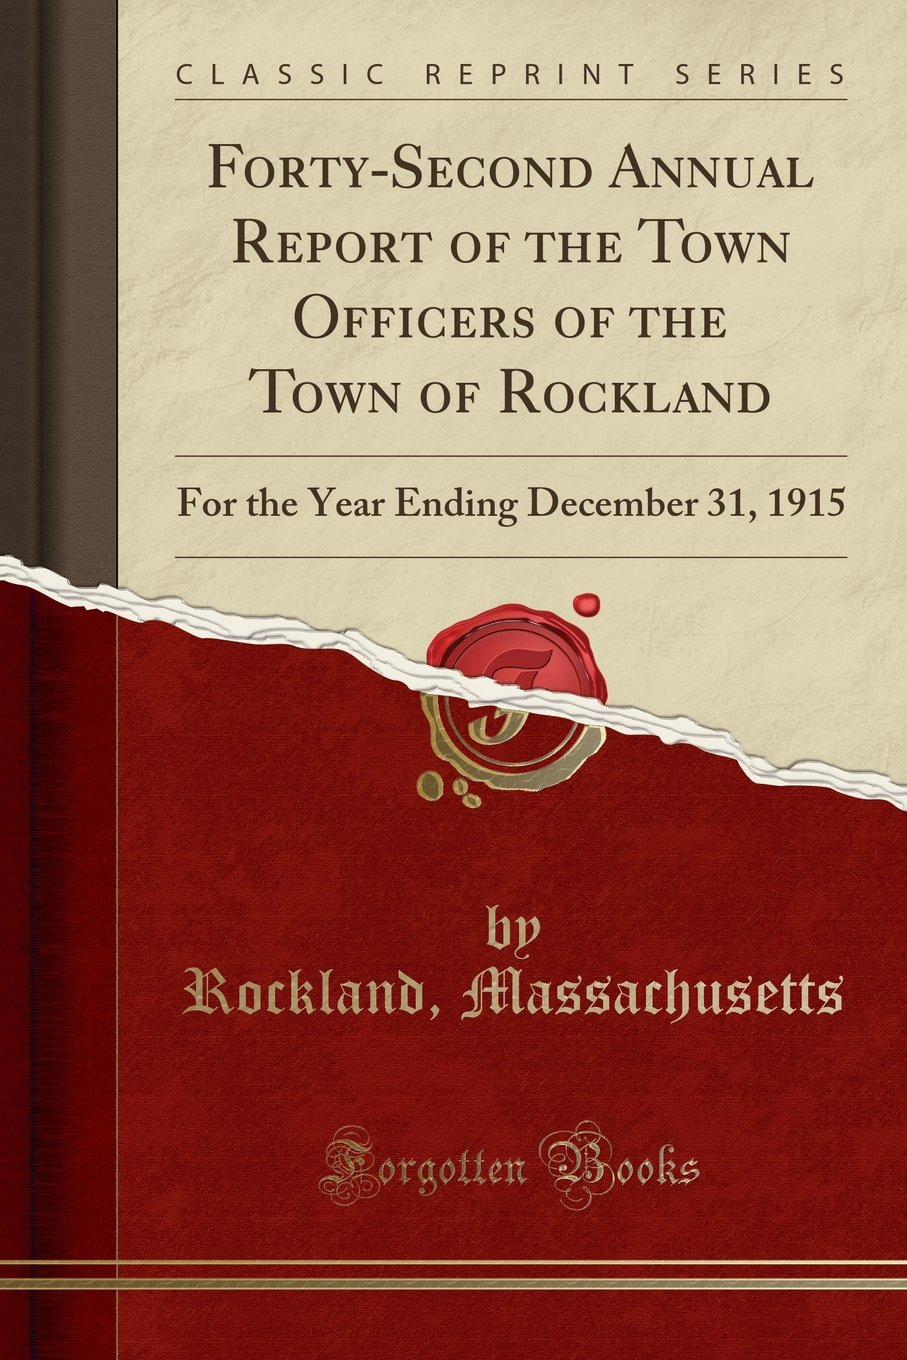 Forty-Second Annual Report of the Town Officers of the Town of Rockland: For the Year Ending December 31, 1915 (Classic Reprint) ebook